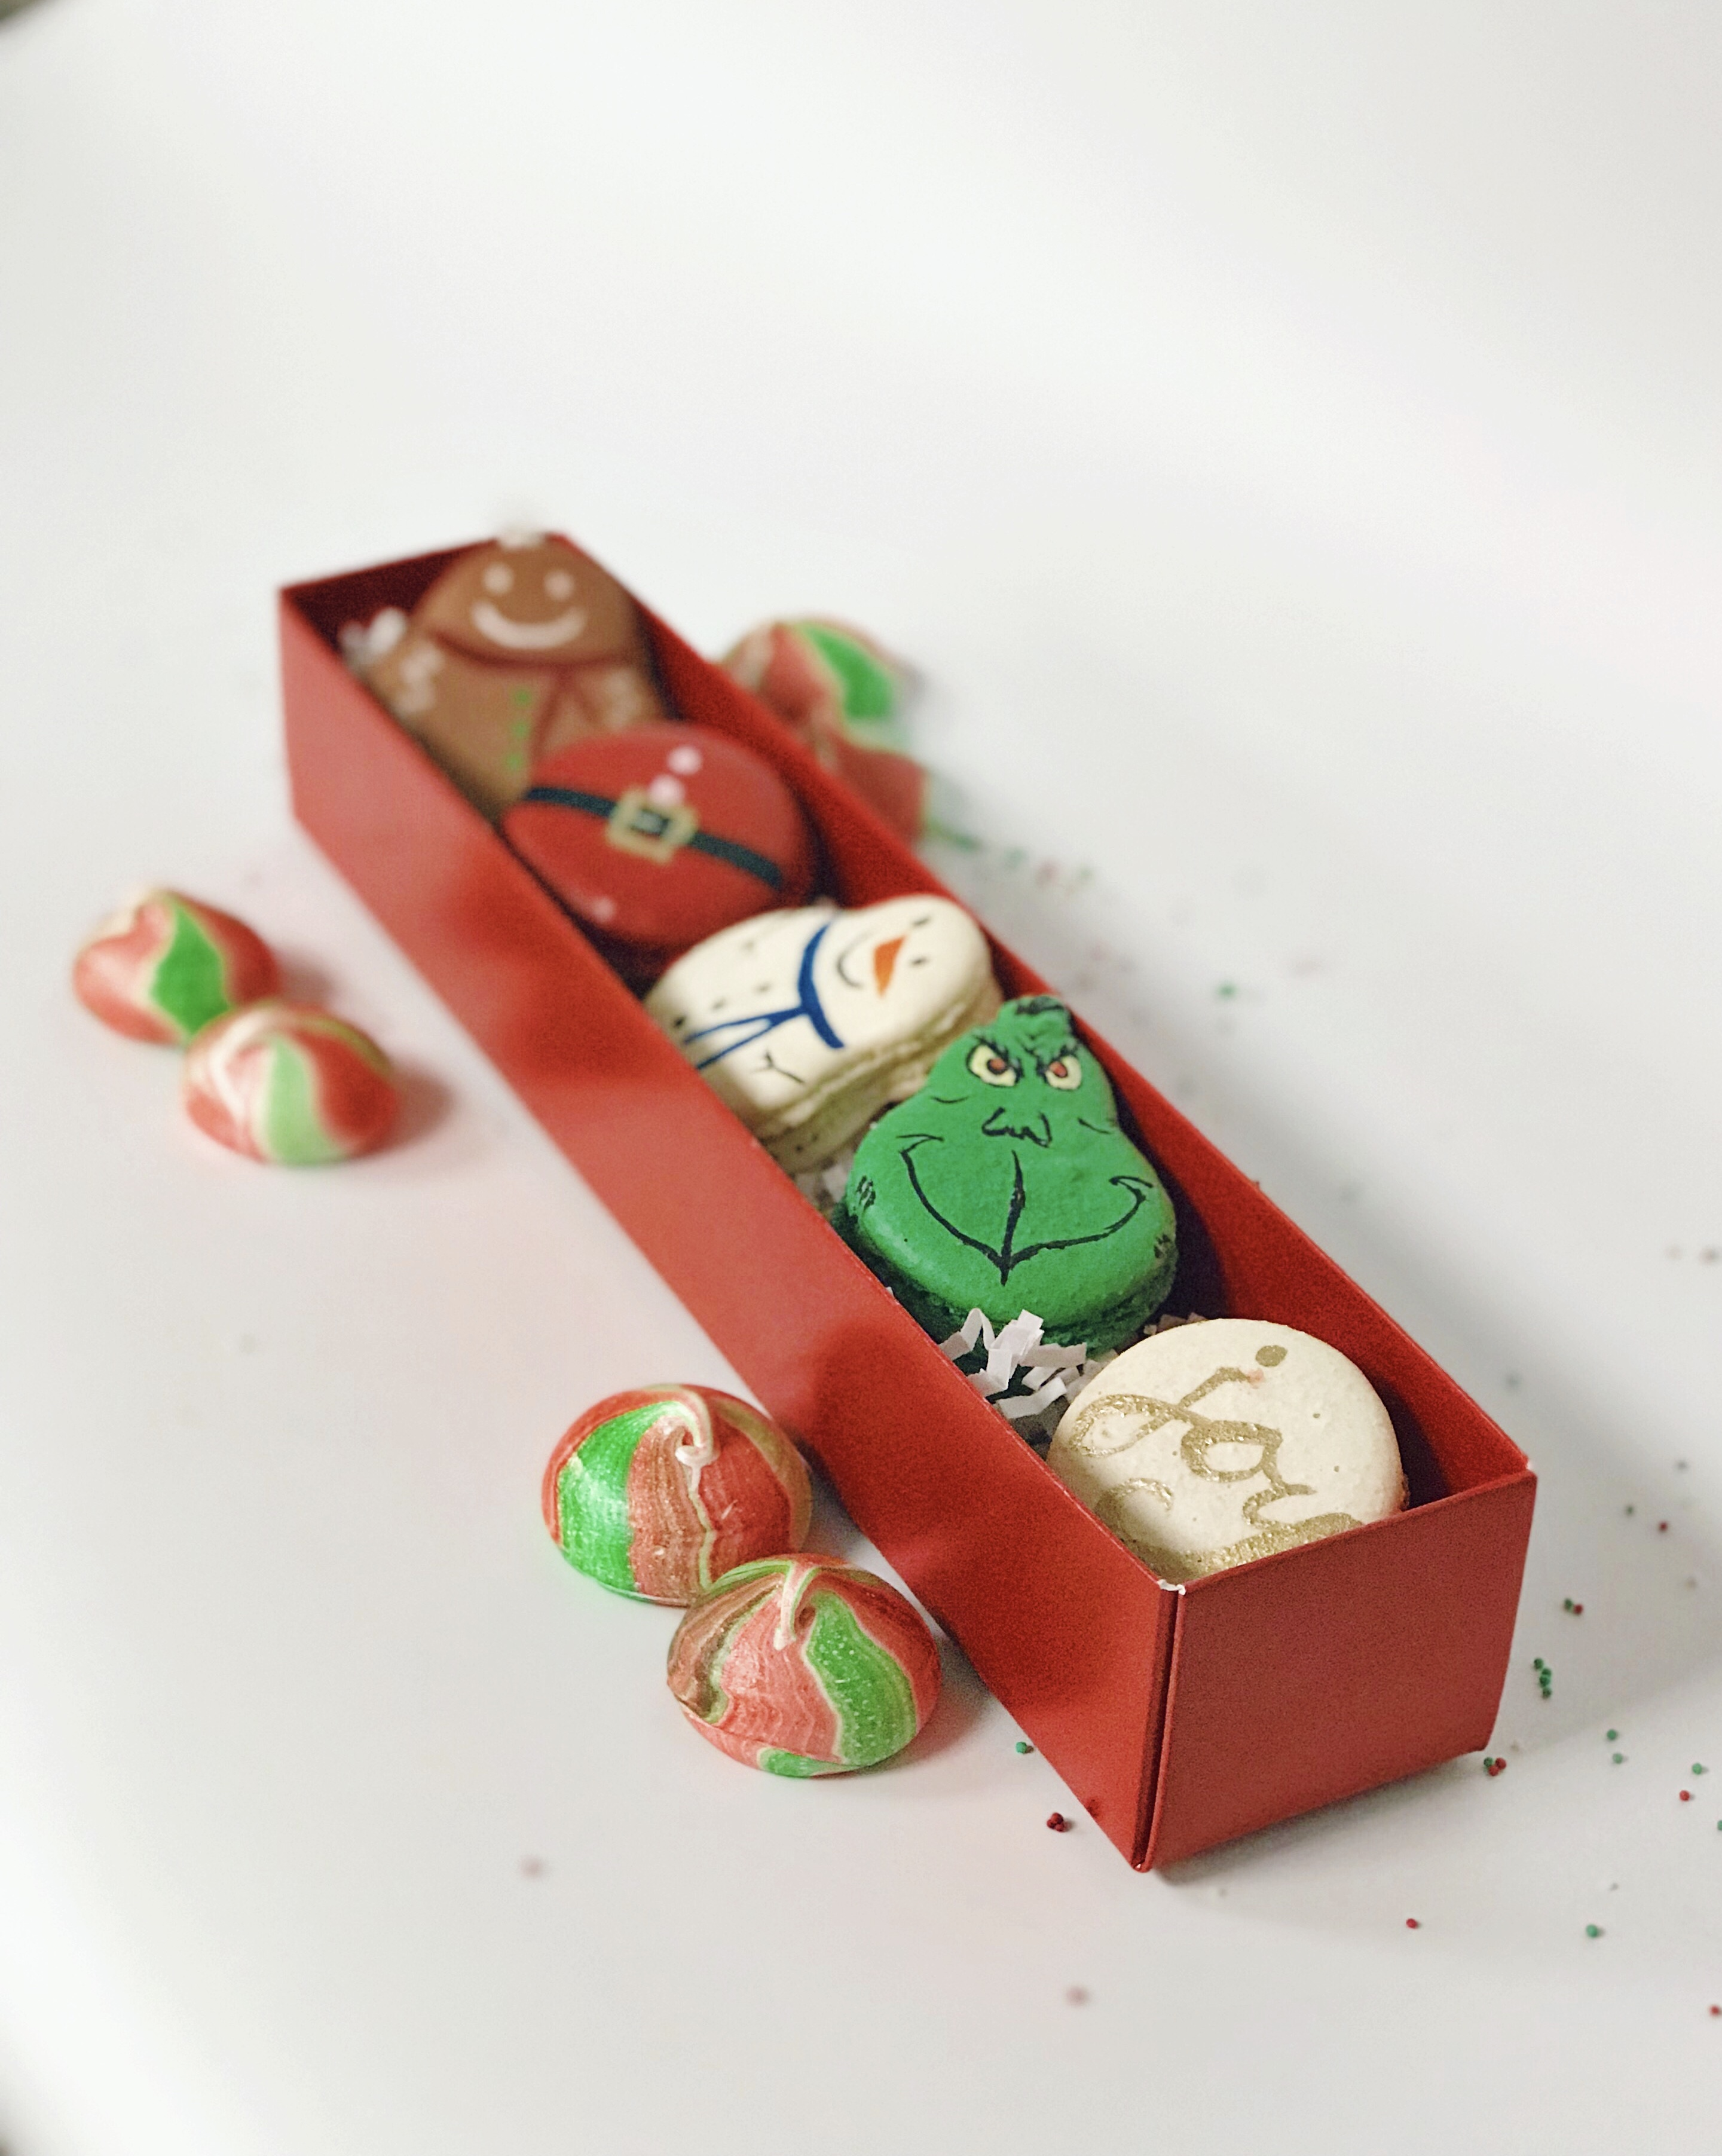 As per usual, Tiffany MacIsaac and her sweet squad have gone all out for the holidays. Festively shaped macarons, chocolate bark bedazzled with edible glitter, and her vertical play on the Bûche de Nöel that arrives as a stump with a cardinal perched on top. (Image: Courtesy Buttercream Bakeshop)<p></p>